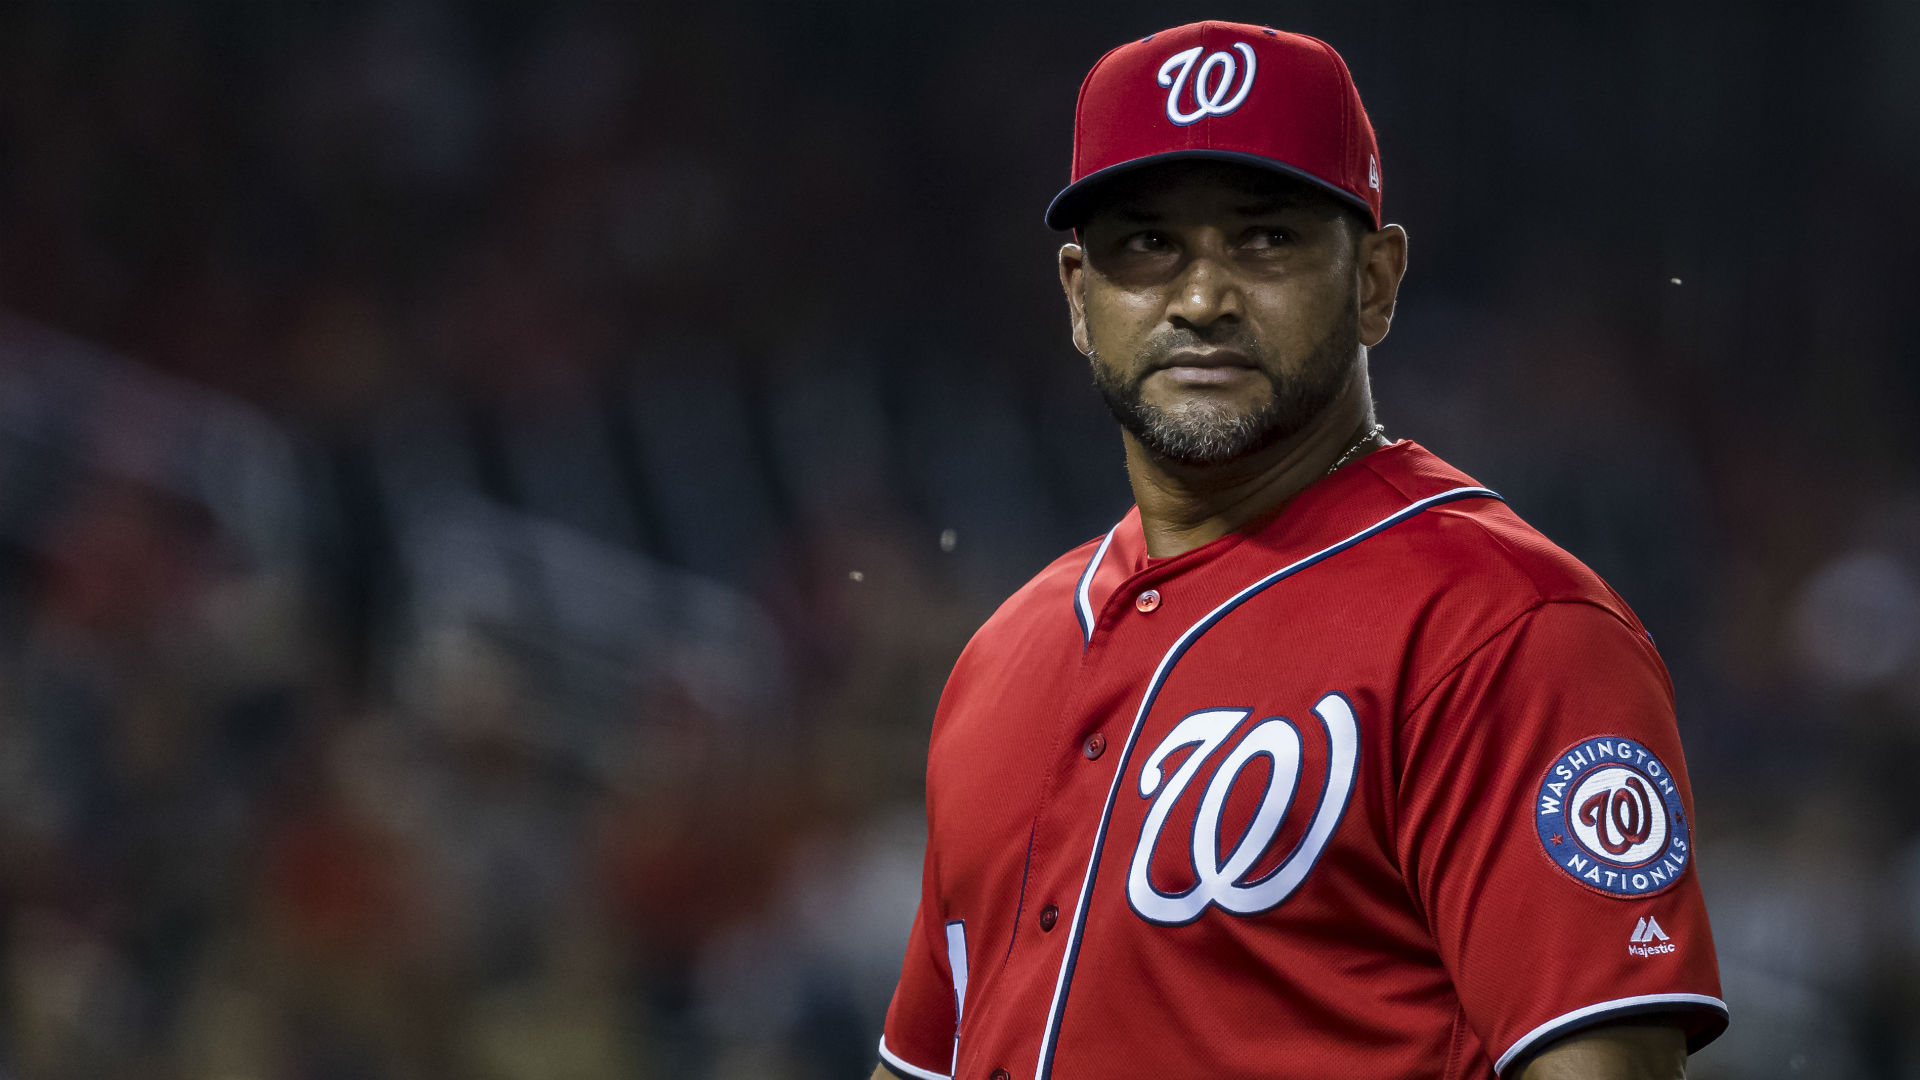 Nationals manager Dave Martinez has cardiac procedure after chest pains during game